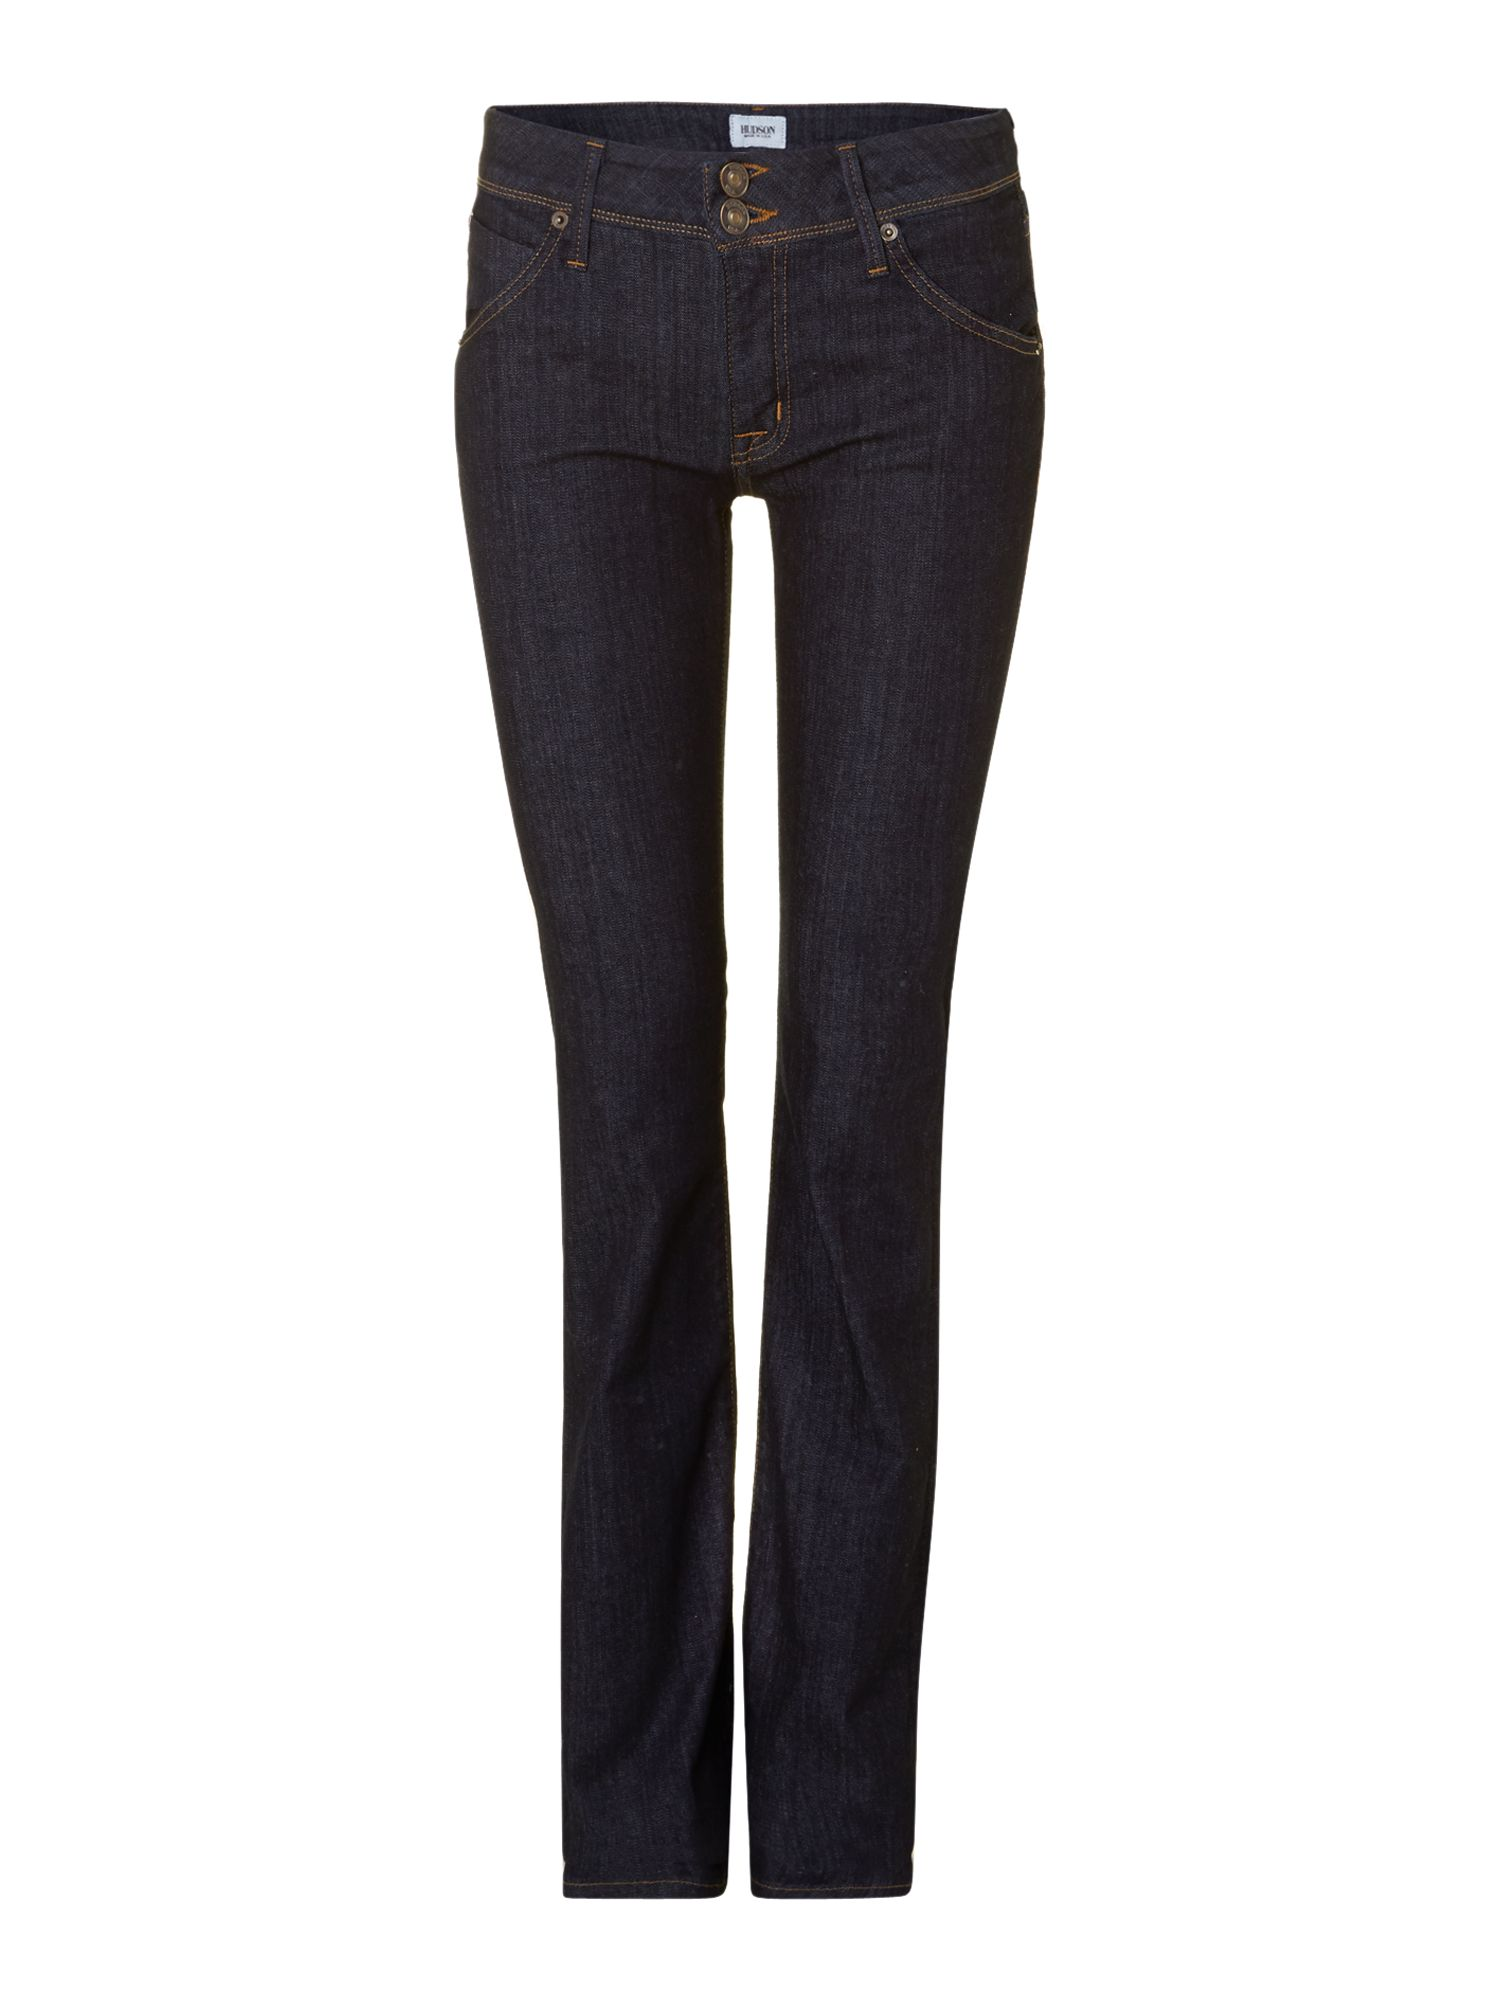 Beth baby bootcut jeans in Foley